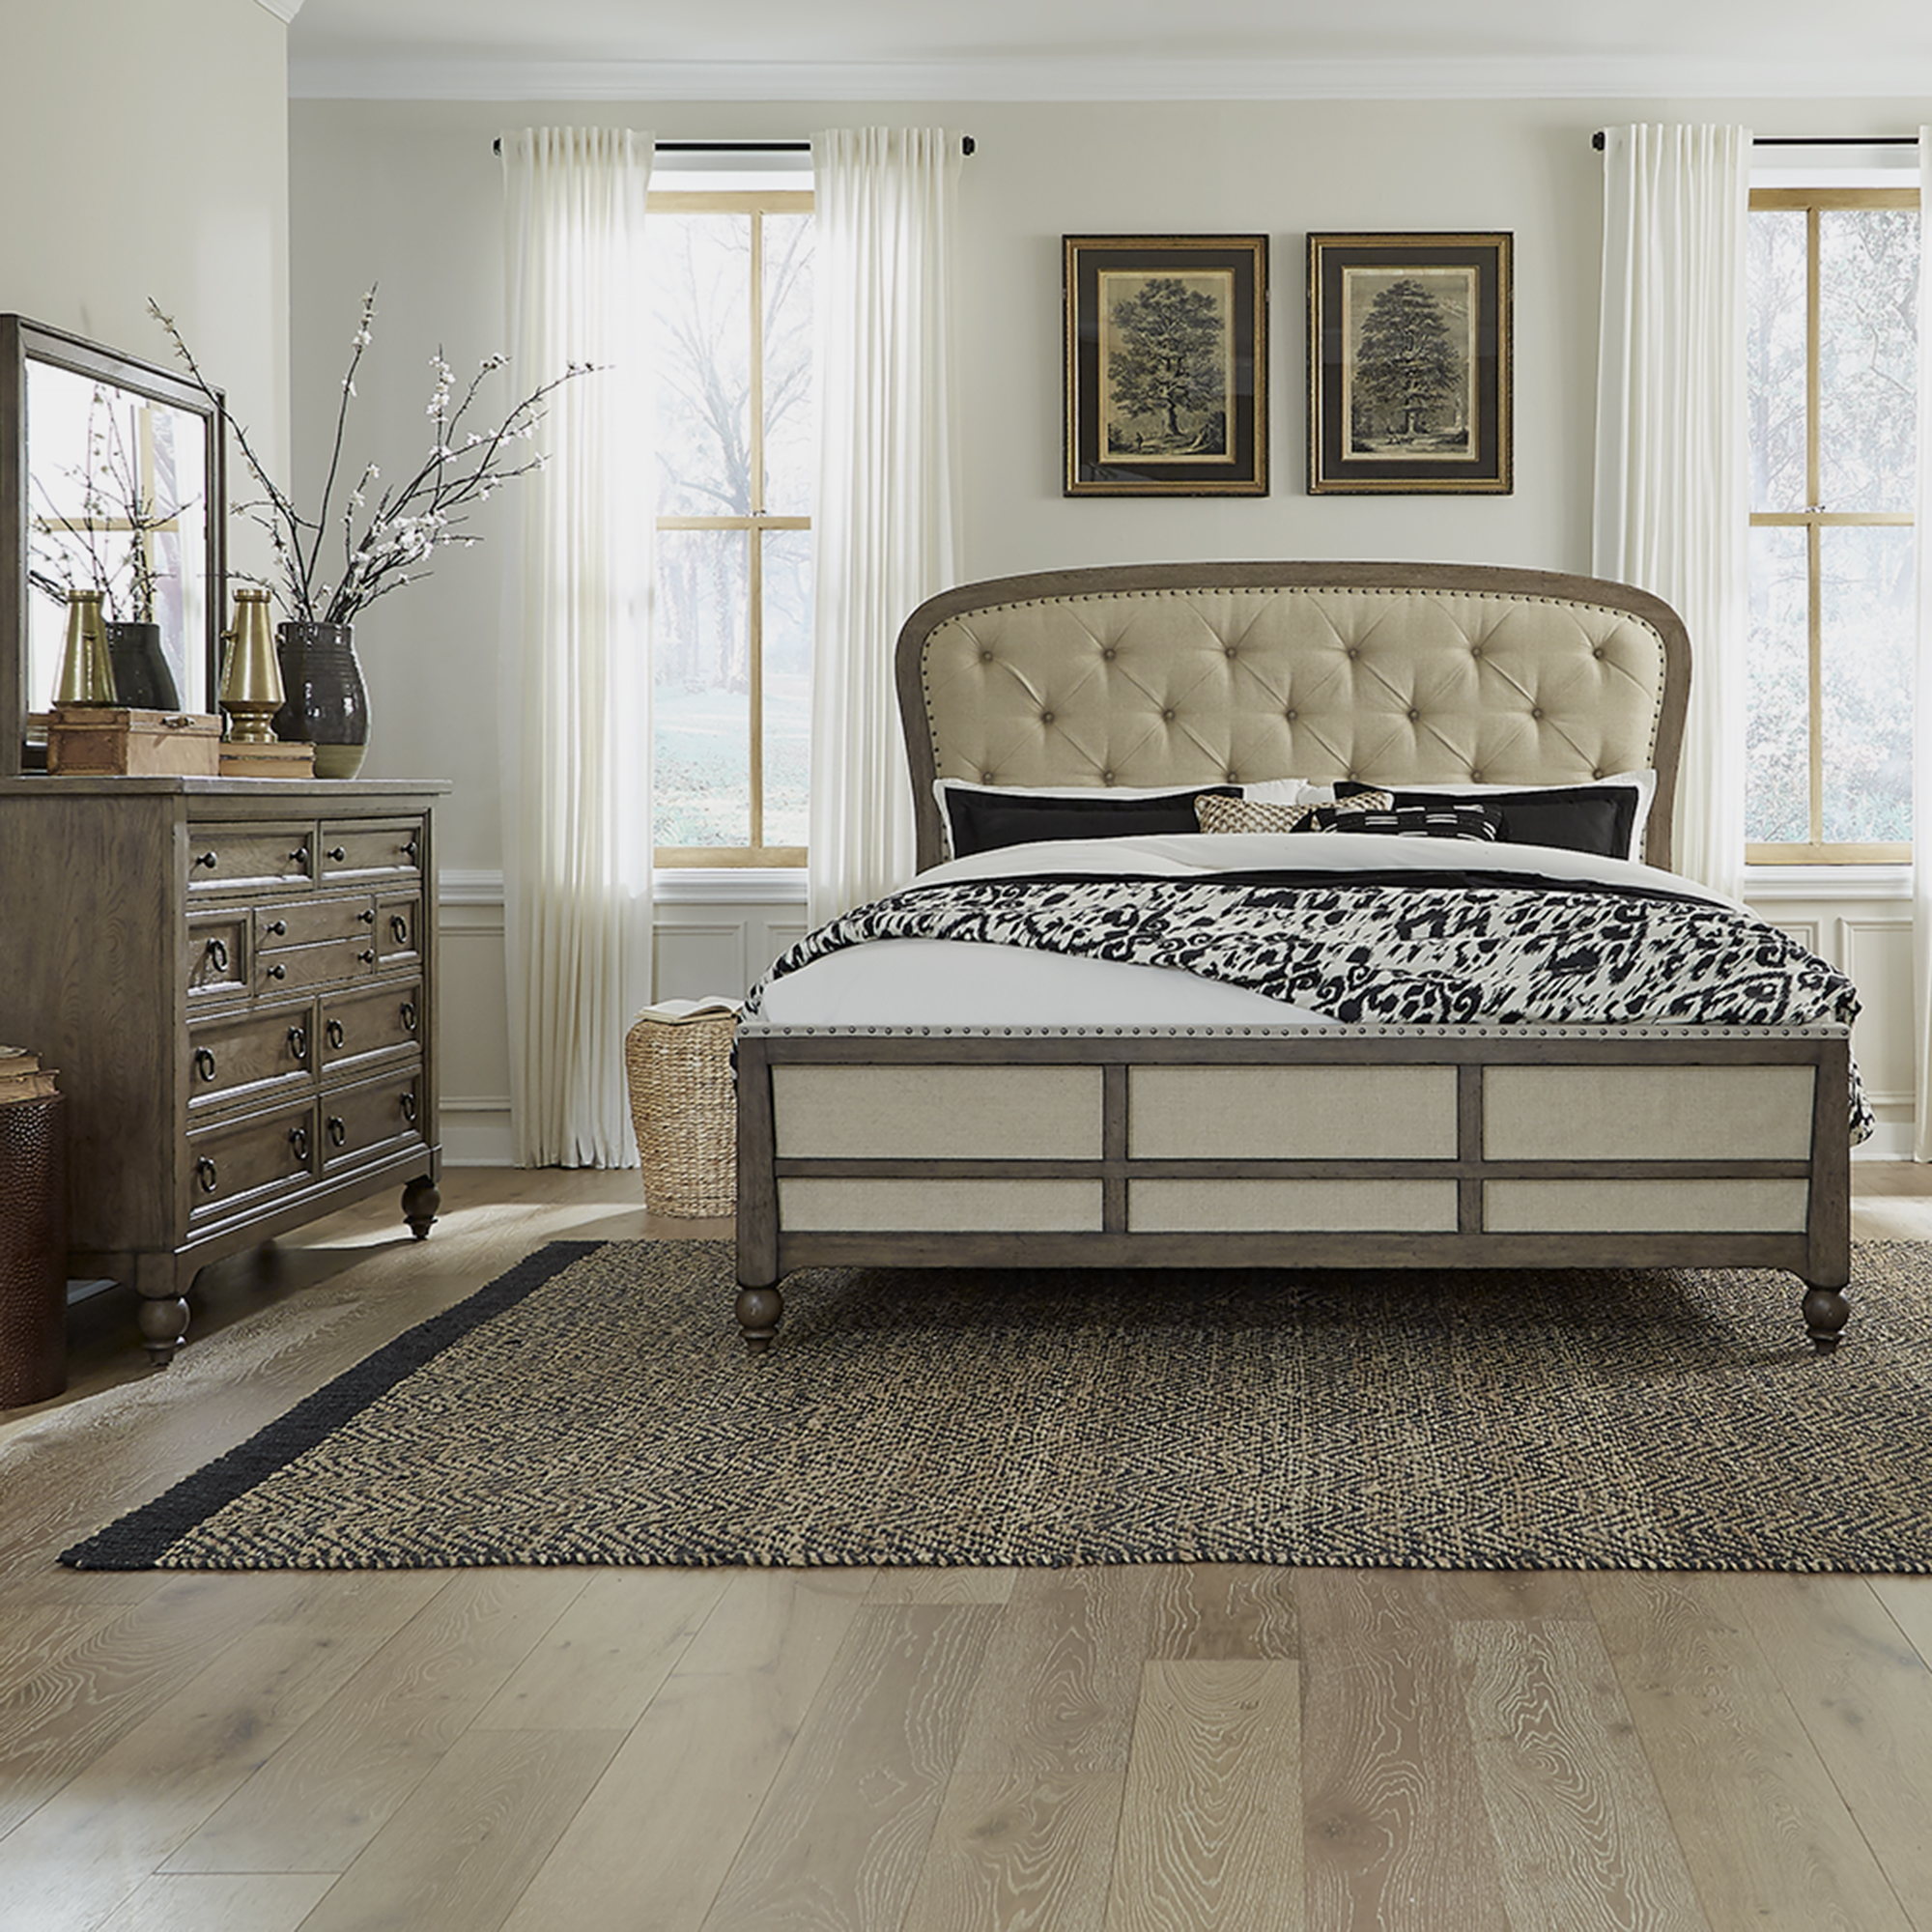 Americana Farmhouse Queen Shelter Bedroom Group by Liberty Furniture at Prime Brothers Furniture